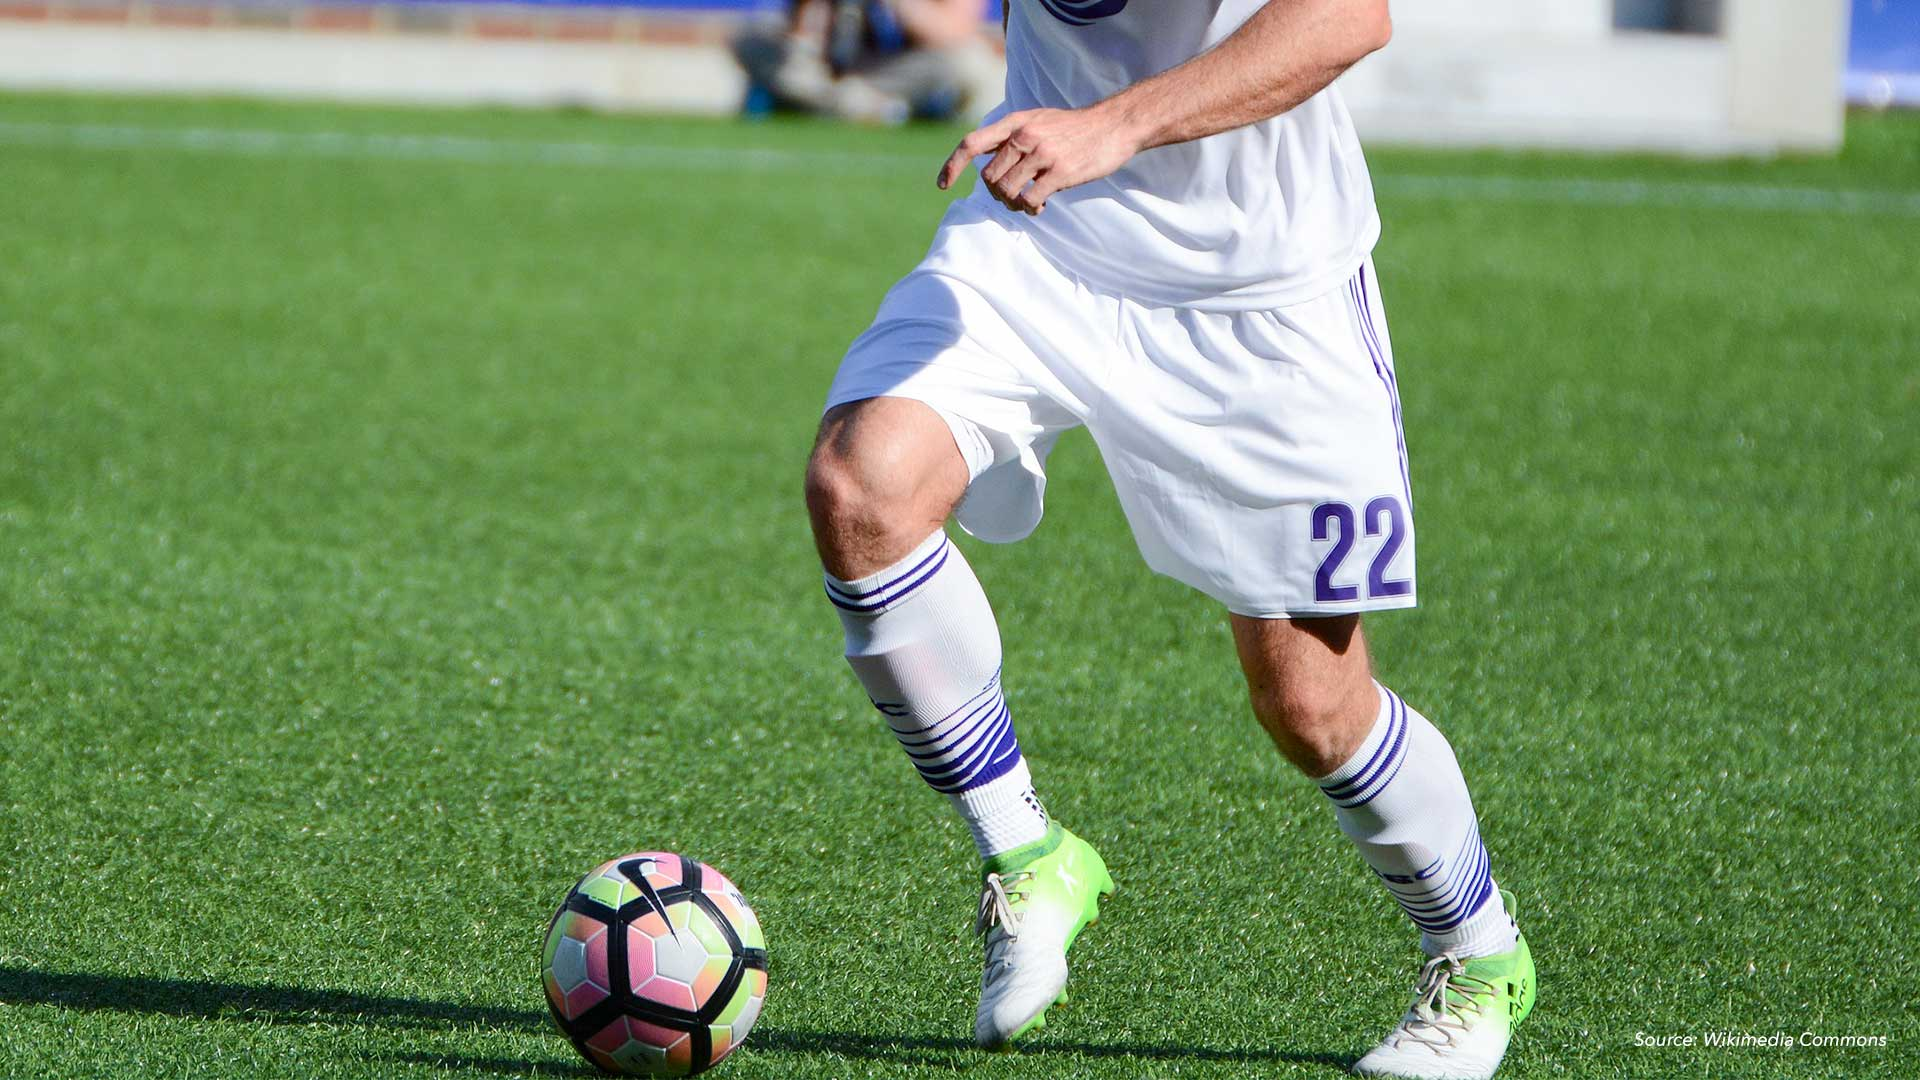 Why Pro Soccer Players Suffer So Many Knee Injuries